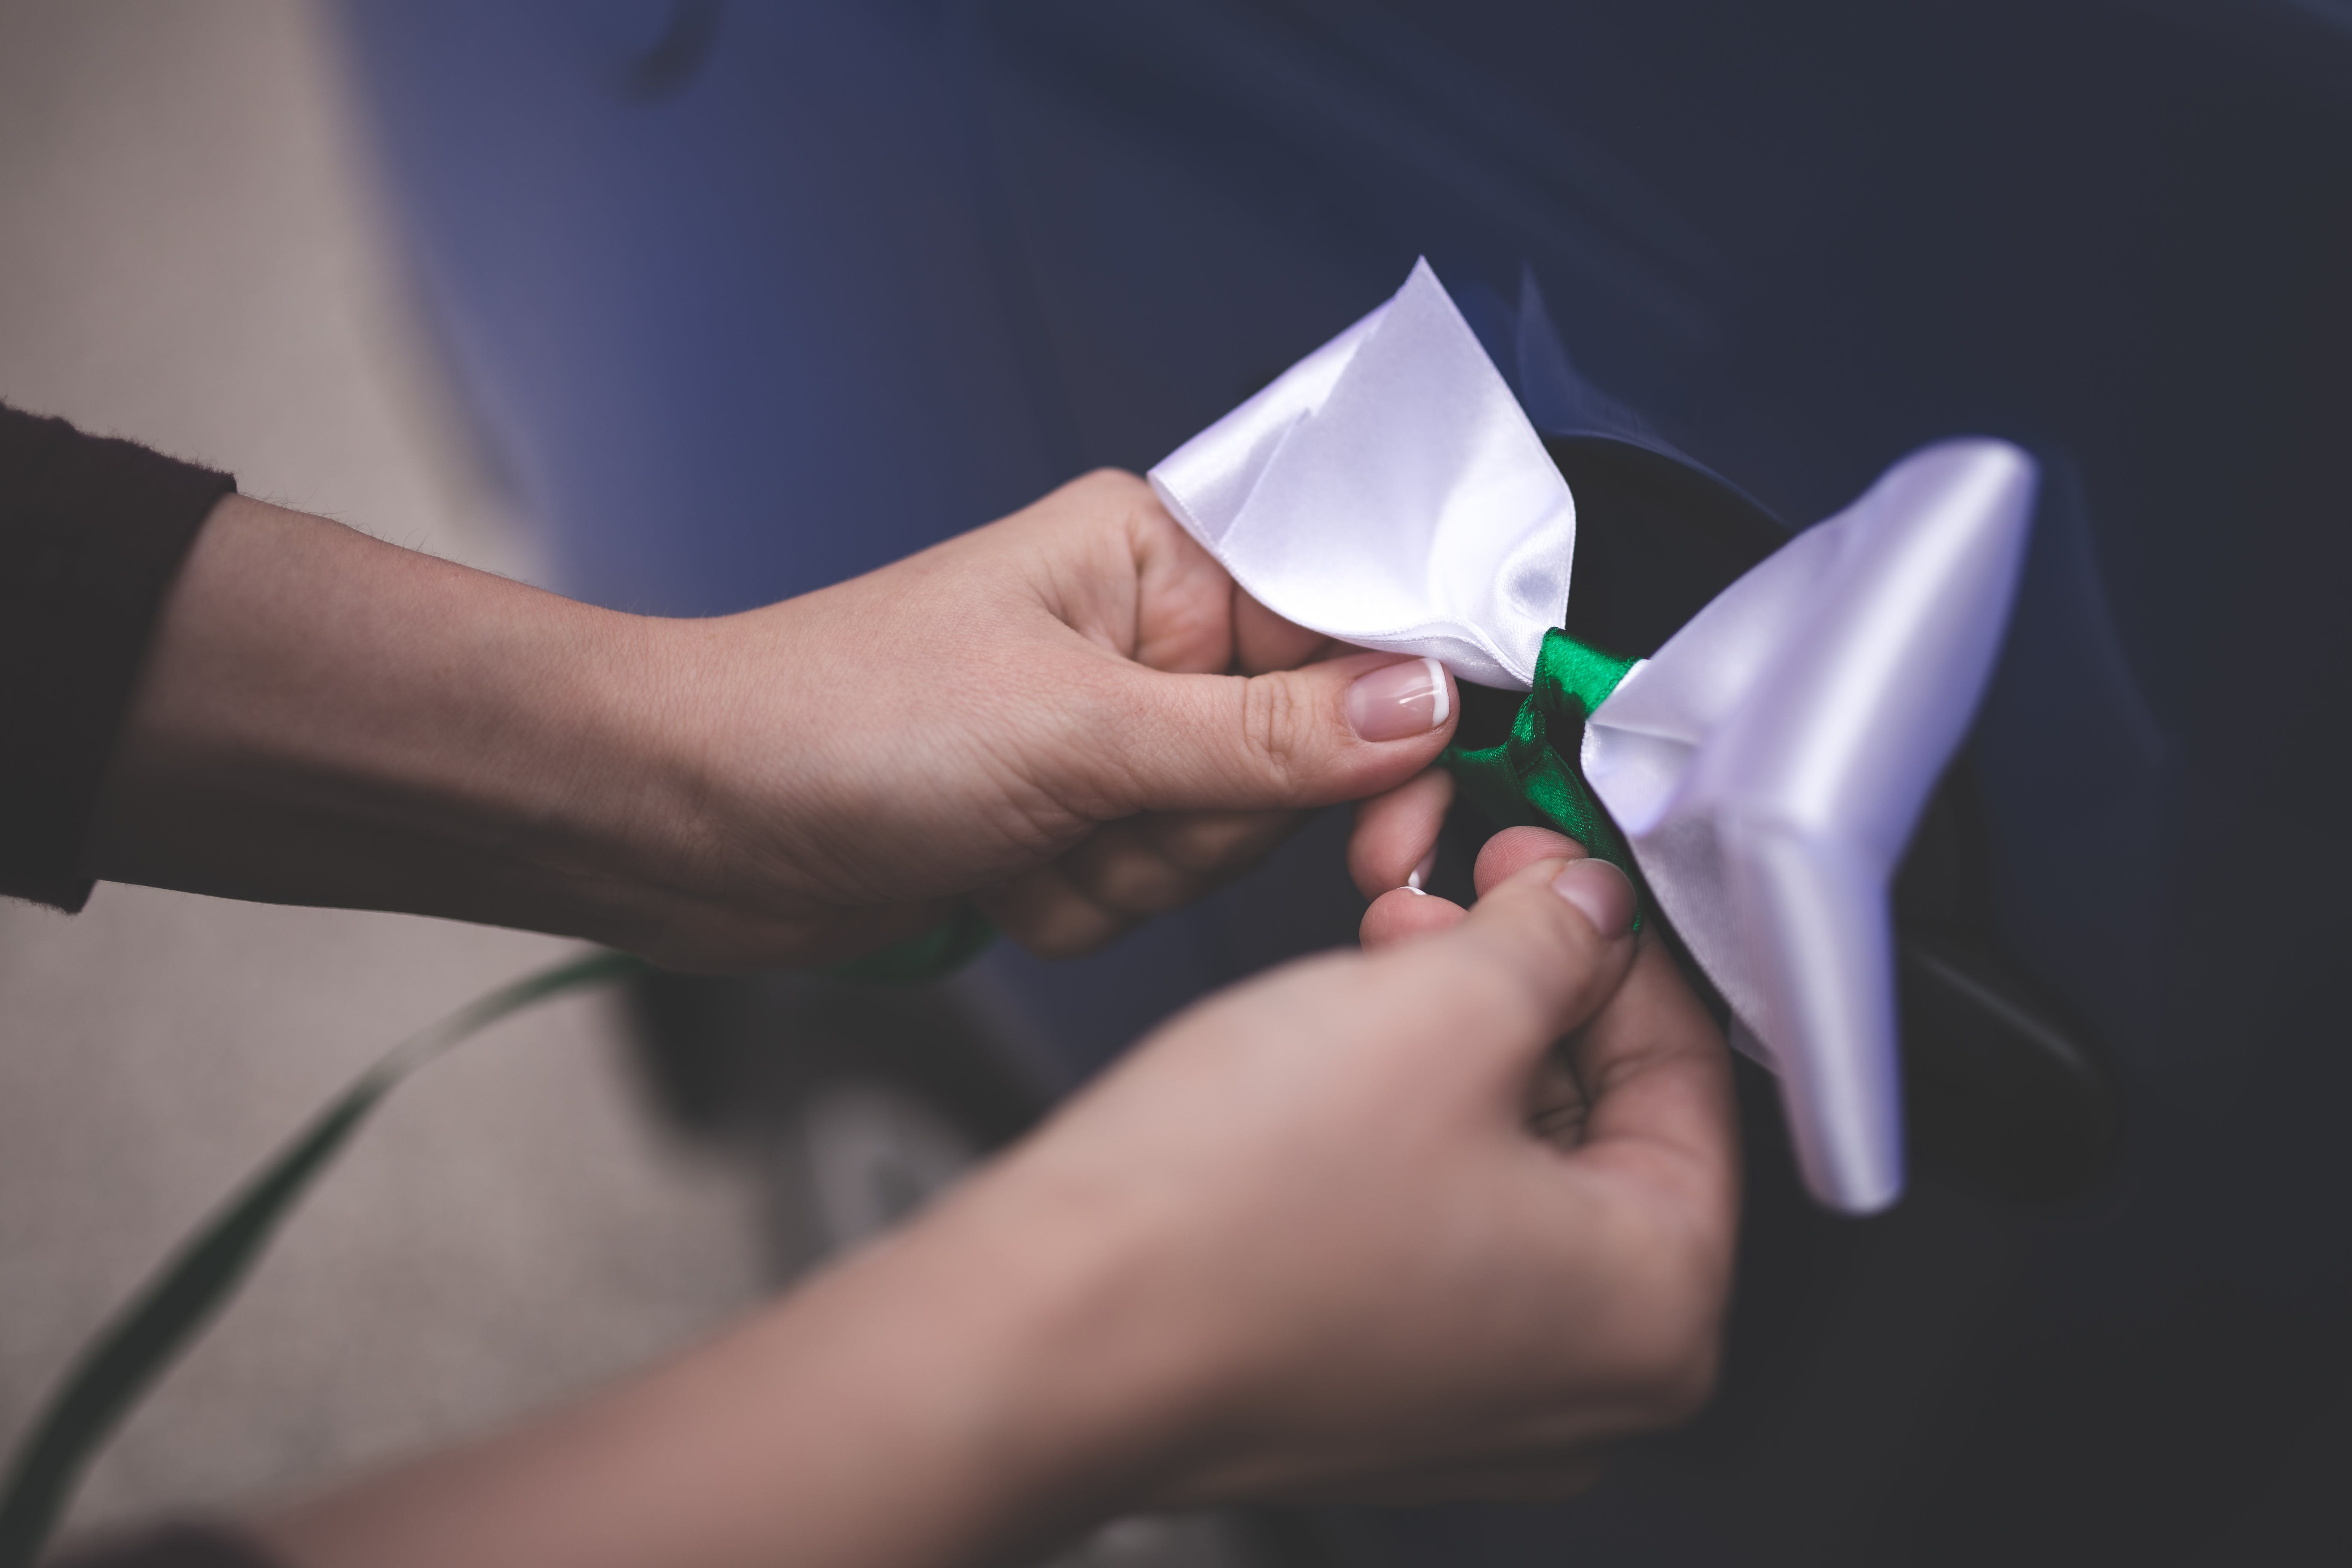 Woman tying a white bow